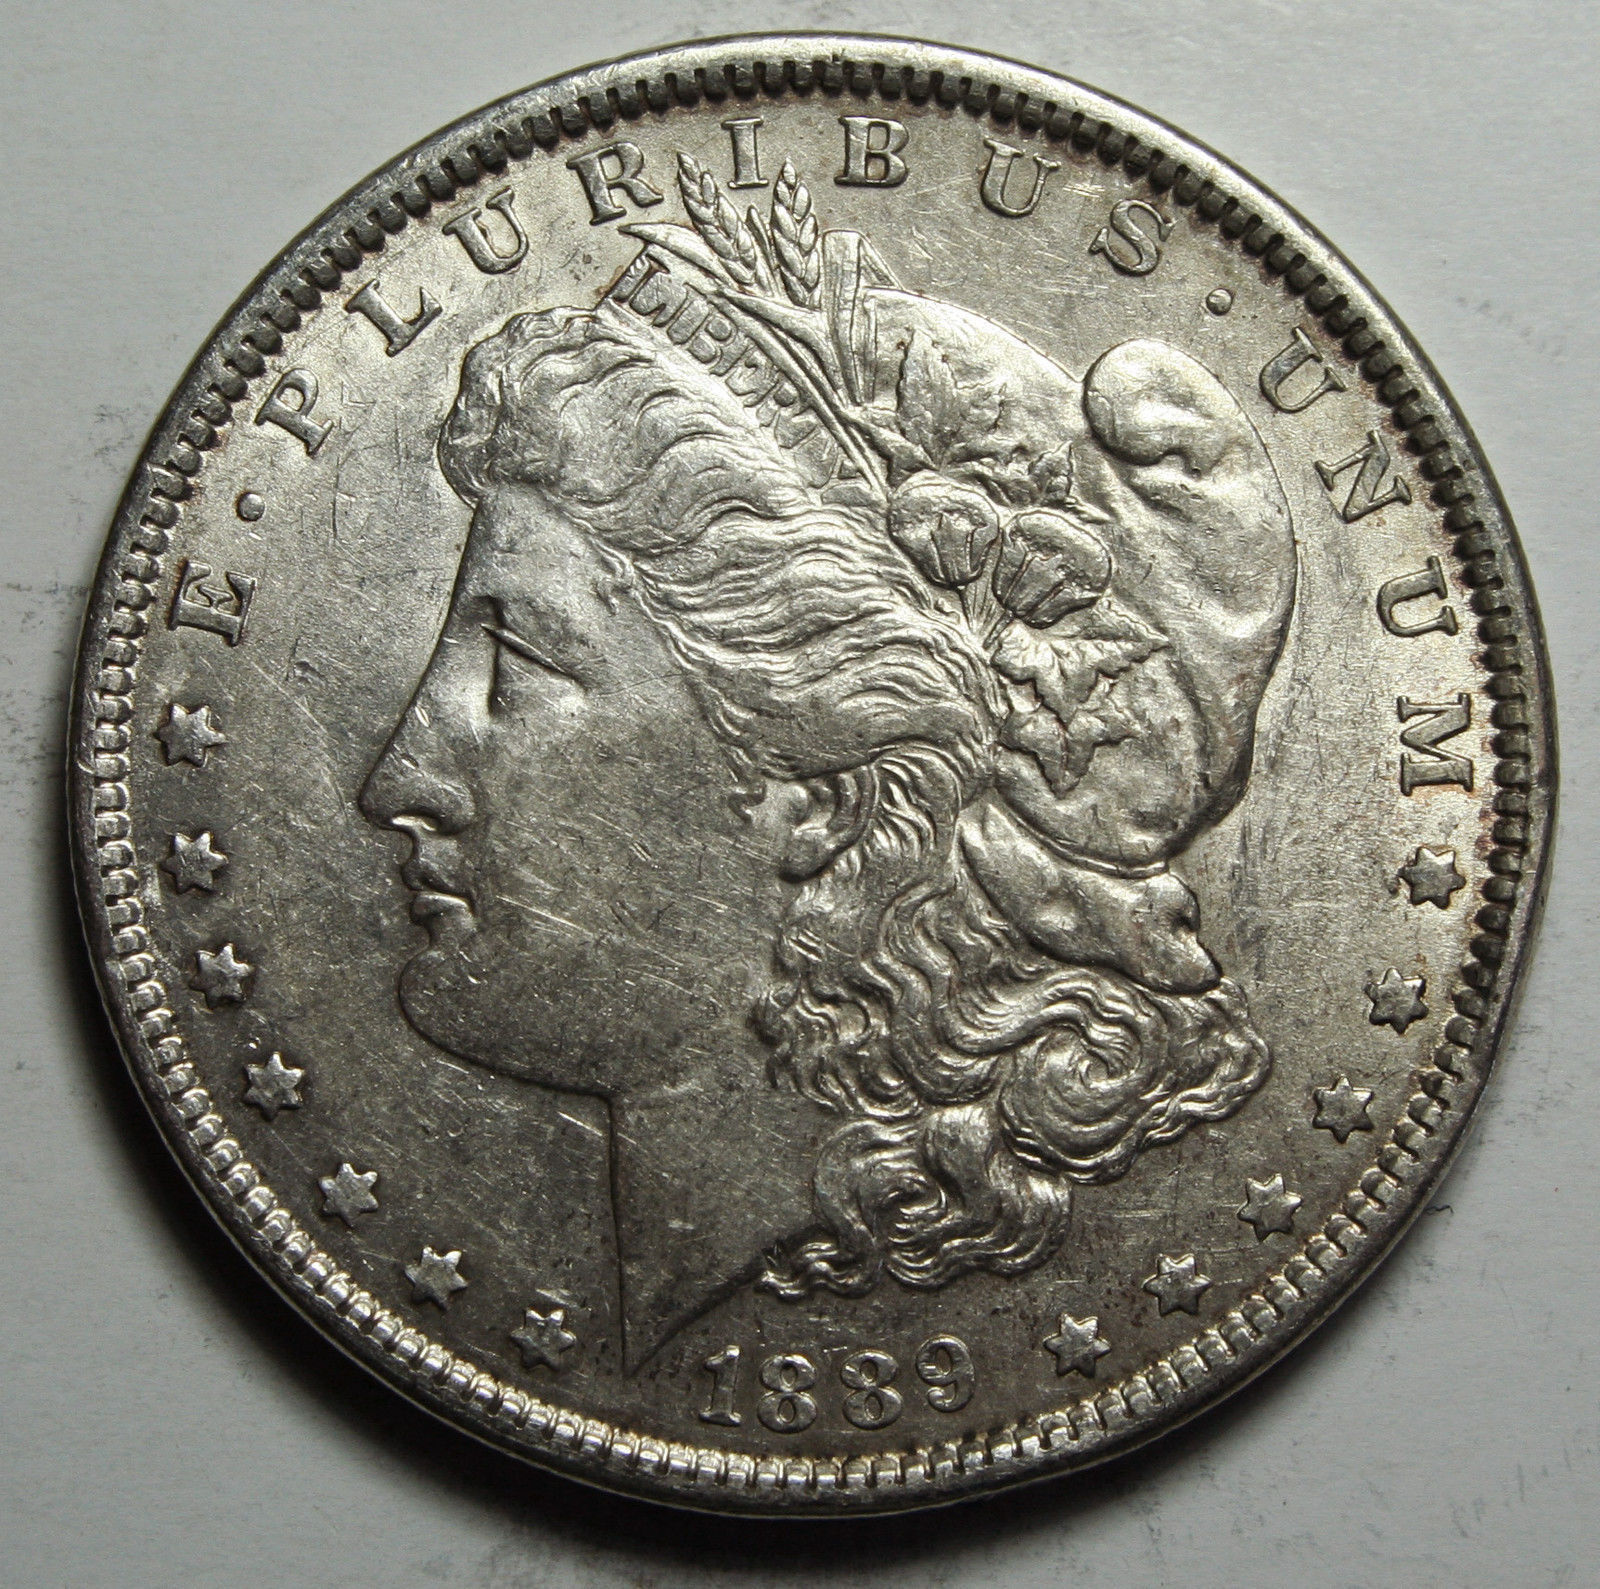 1889 MORGAN SILVER DOLLAR COIN Lot# D 39